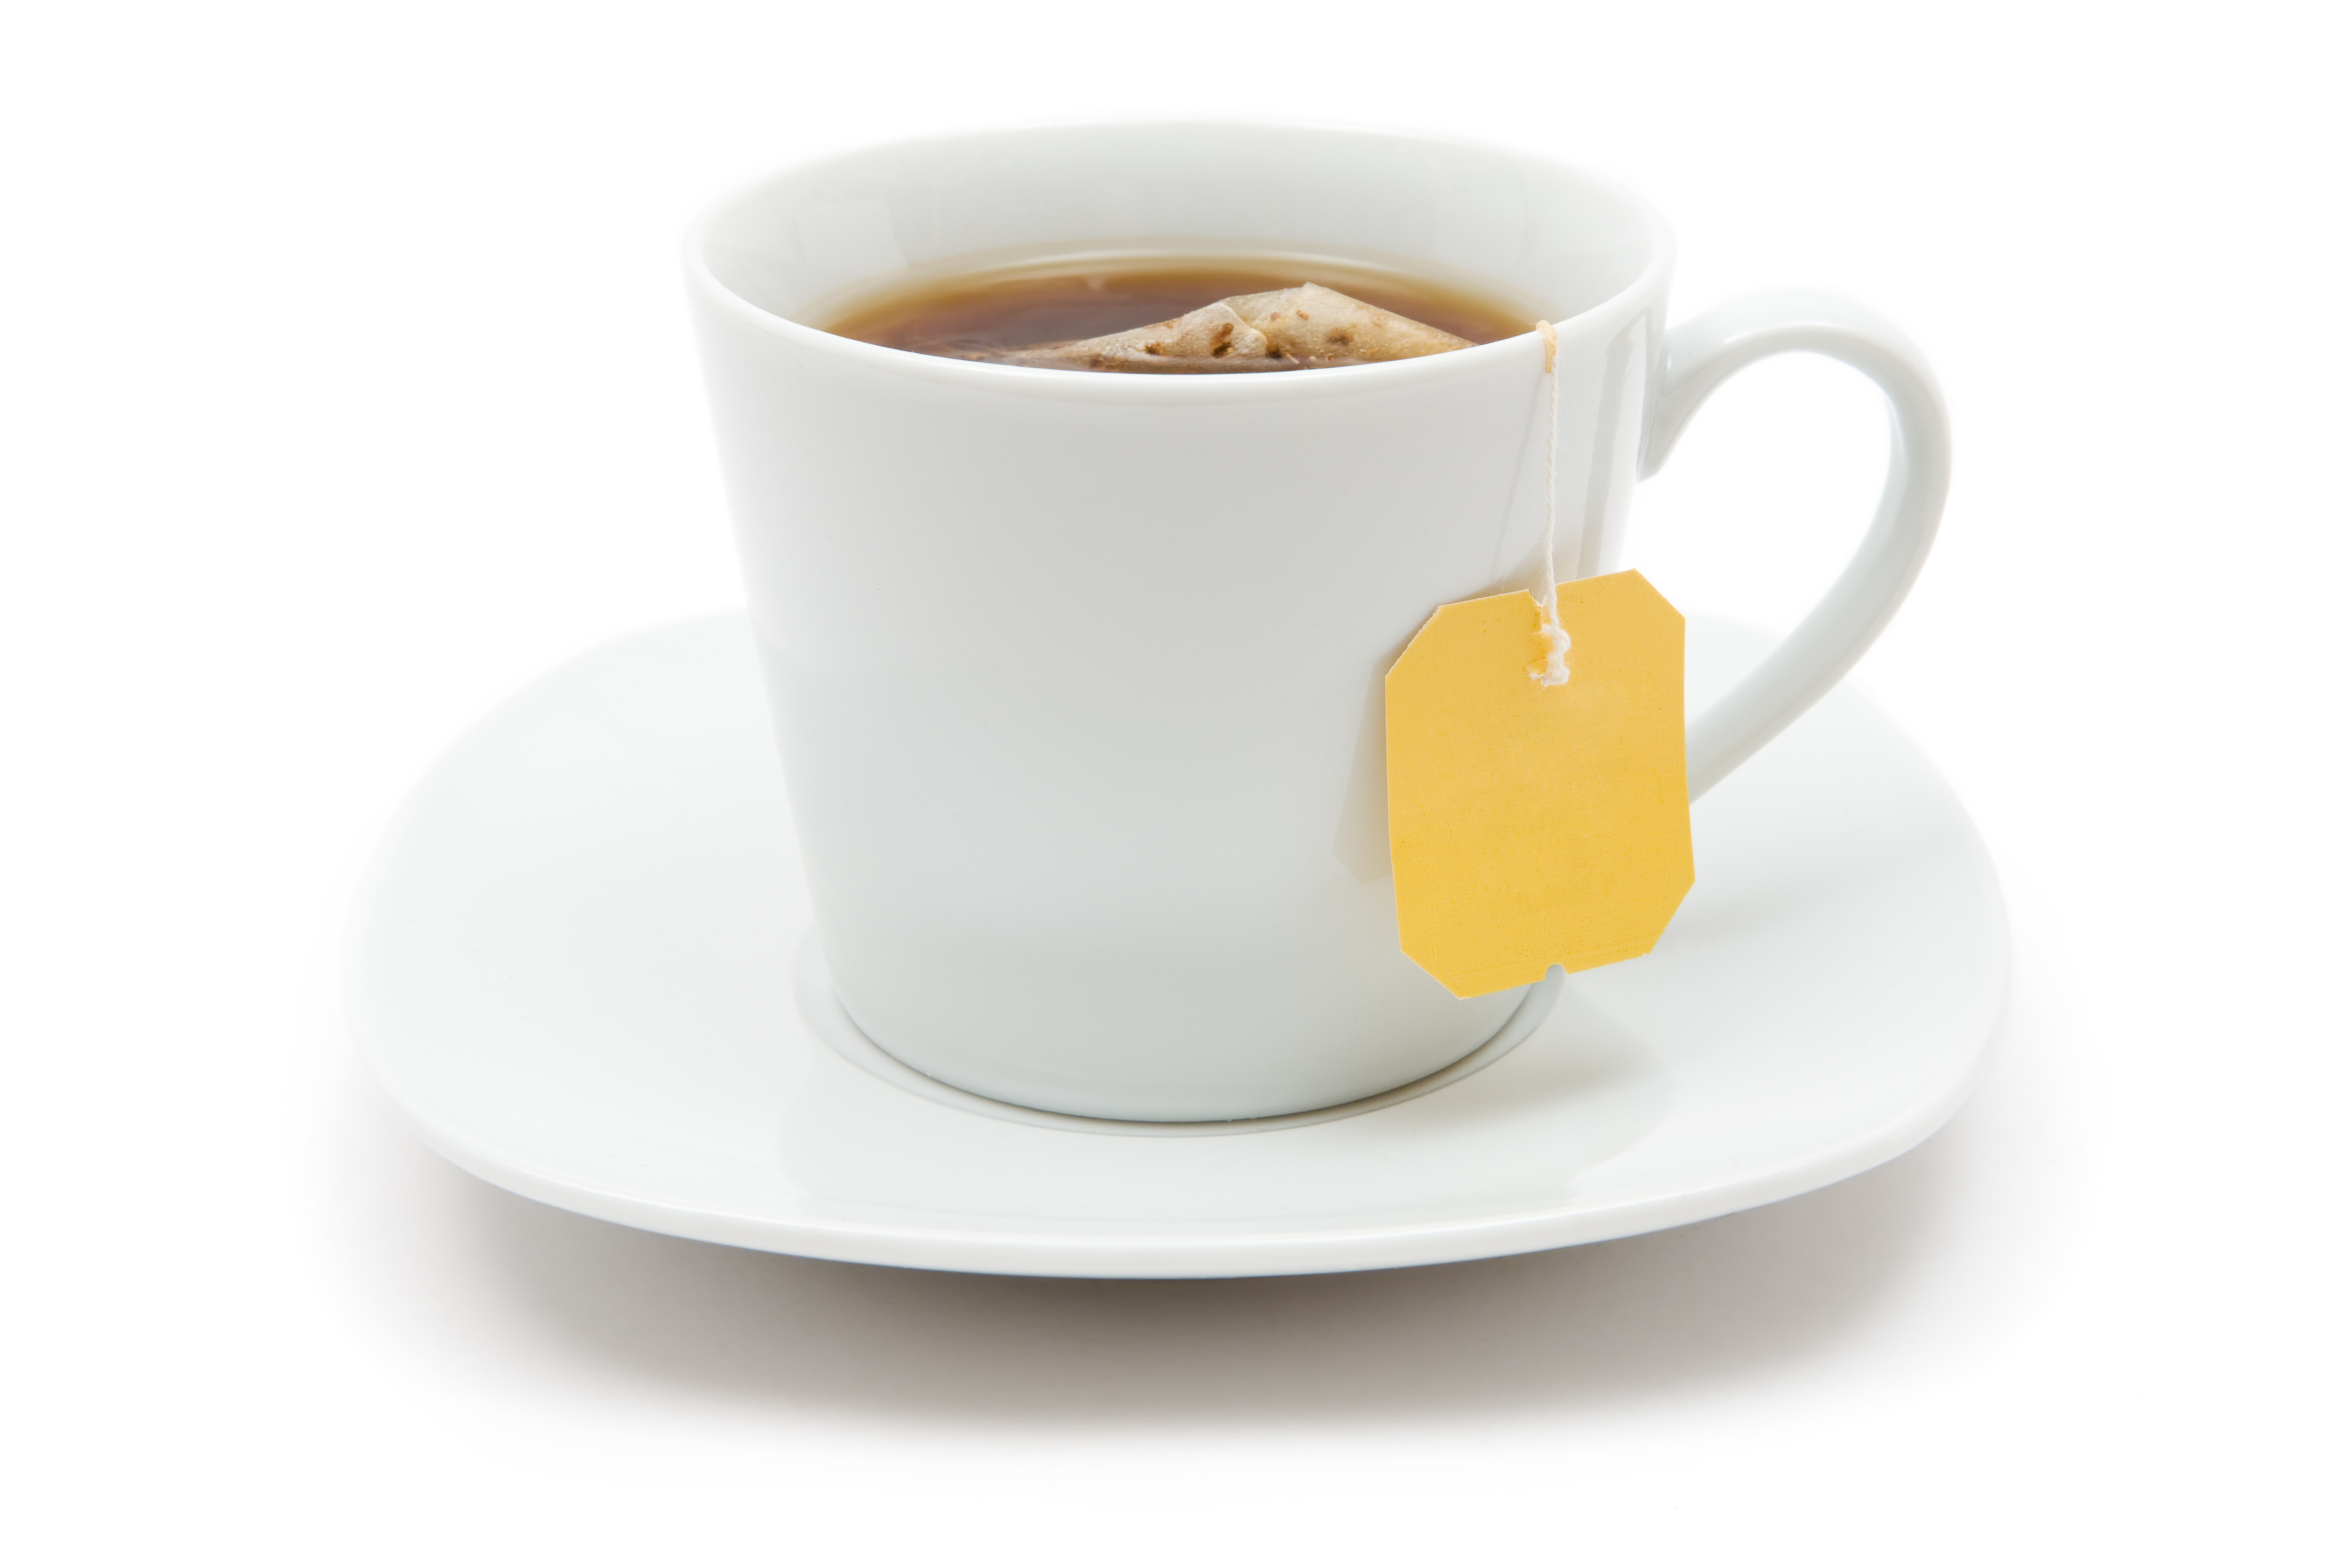 Full cup of black tea. White background.